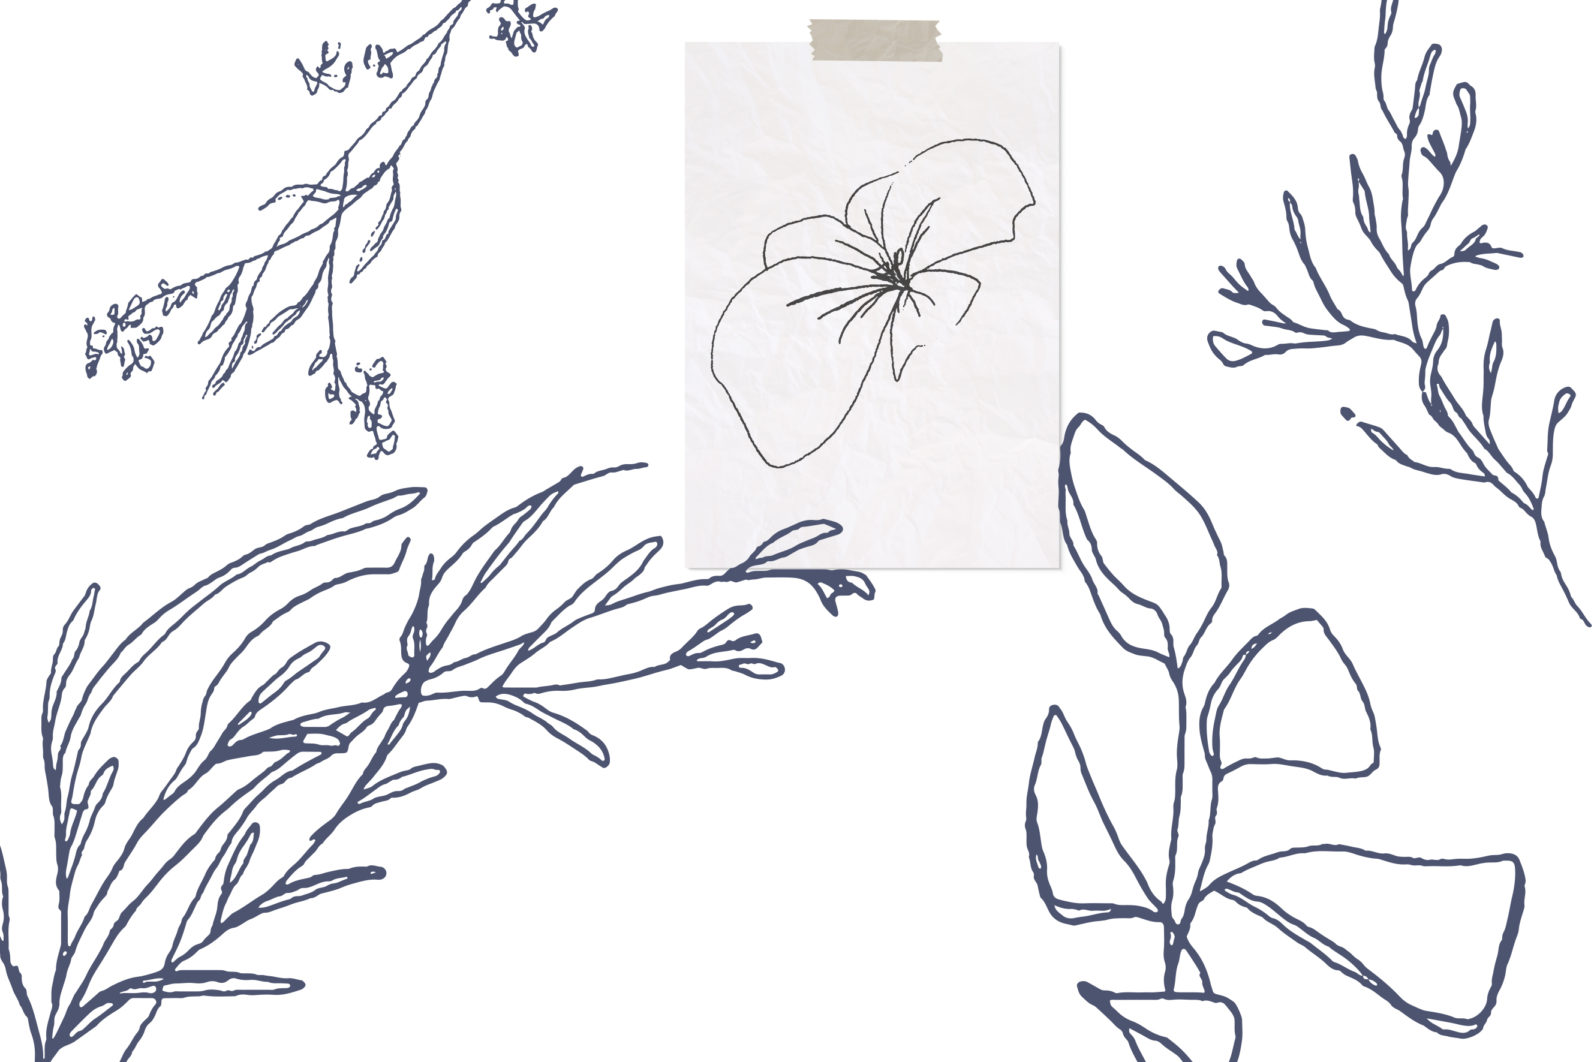 Floral pencil drawing one line art elements, Vector - etsy pencil preview -